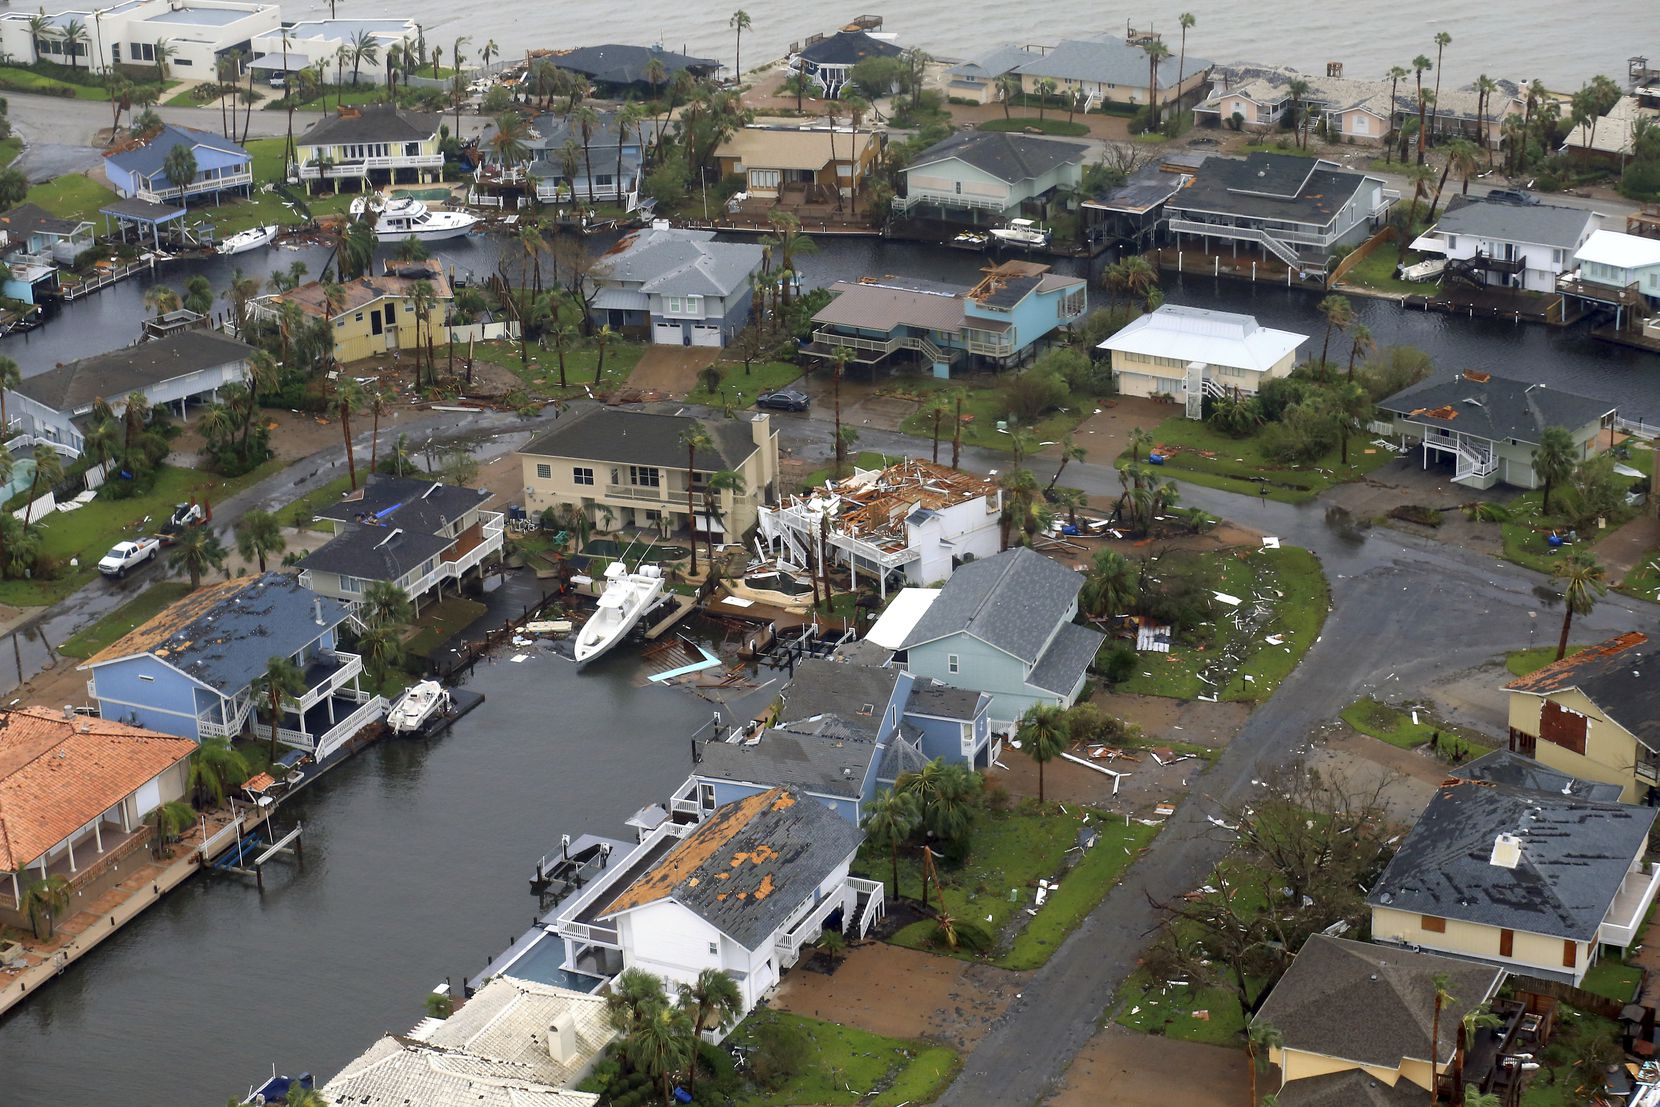 This aerial photo shows a view of the damage after Hurricane Harvey, Monday, August 28, 2017, in Corpus Christi, Texas.  Harvey hit the coast as a Category 4 hurricane (Gabe Hernandez / Corpus Christi Caller-Times via AP)